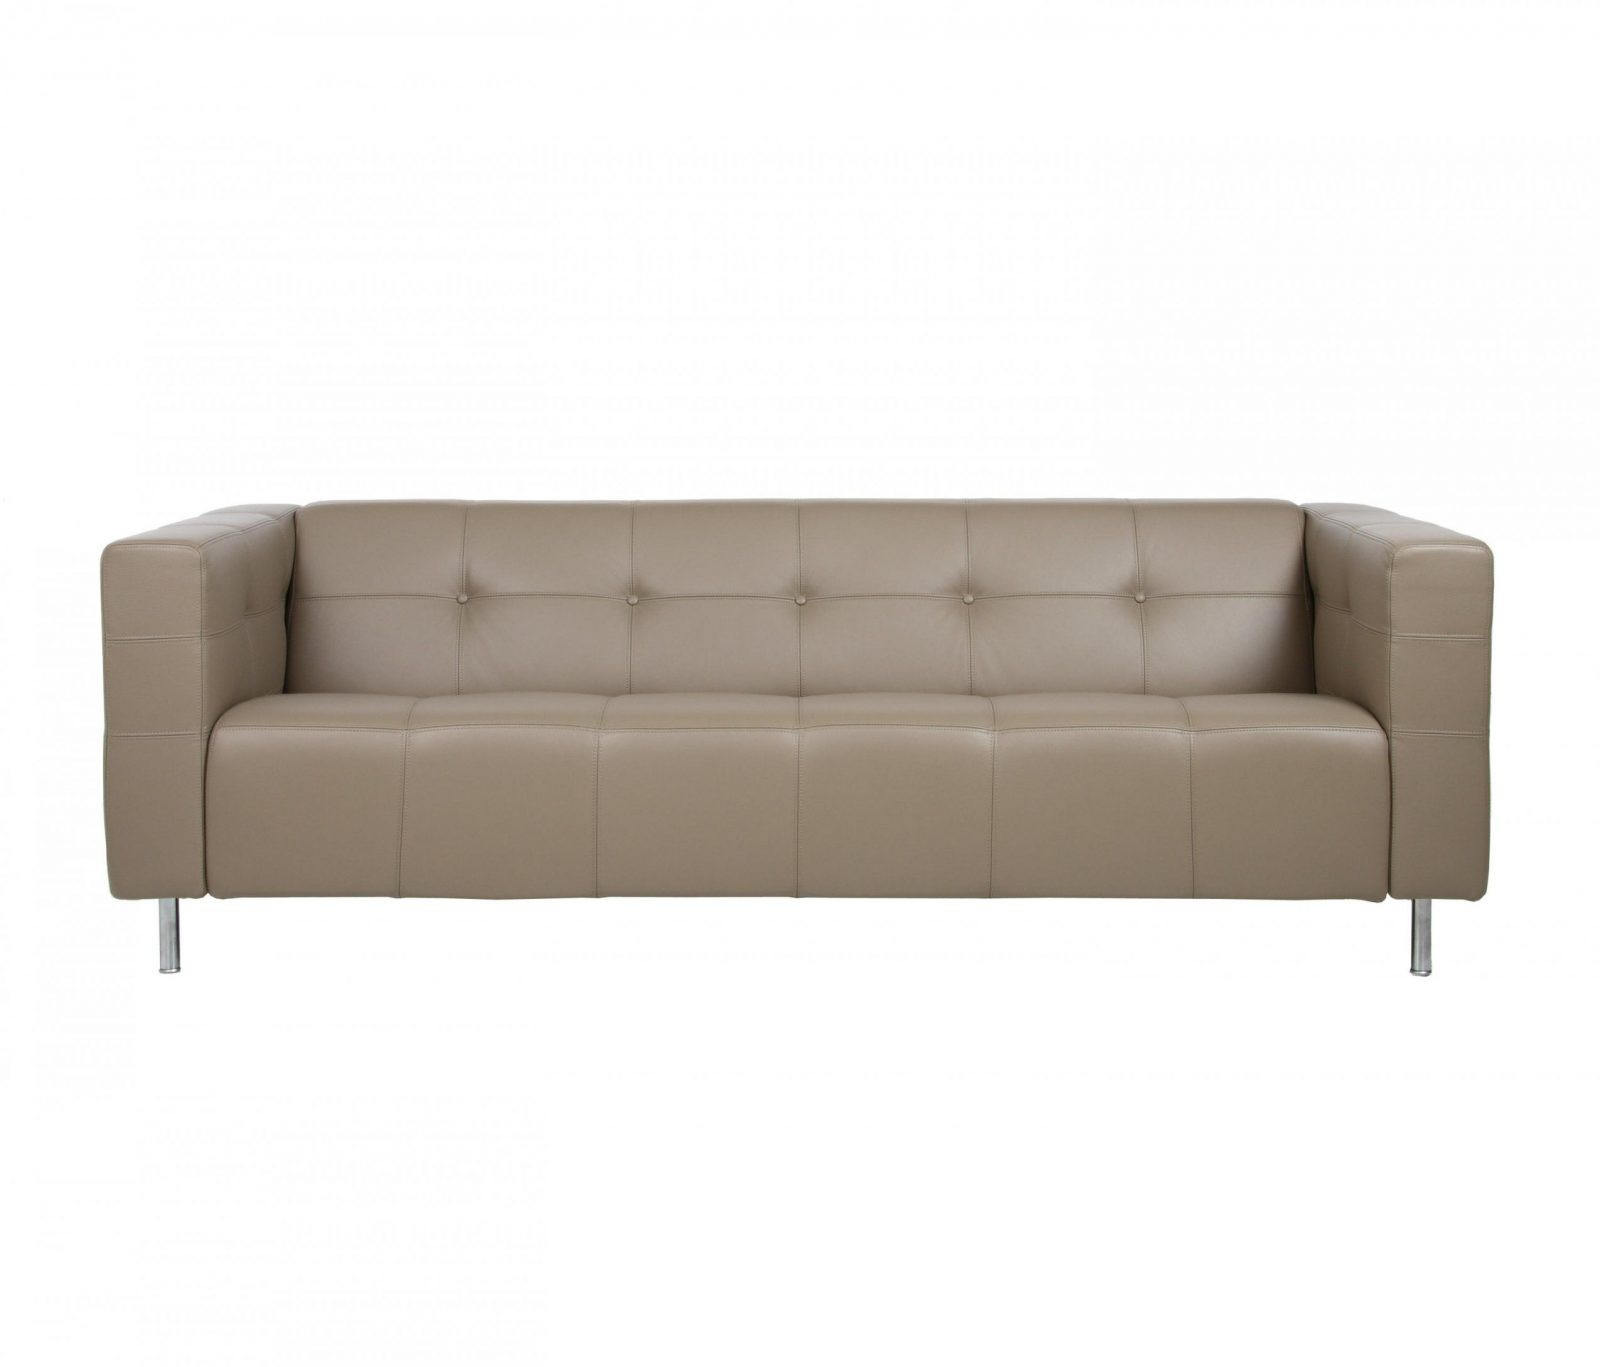 6111 Sofa  Lounge Sofas From Gelderland  Architonic von Seats And Sofas Köln Bild